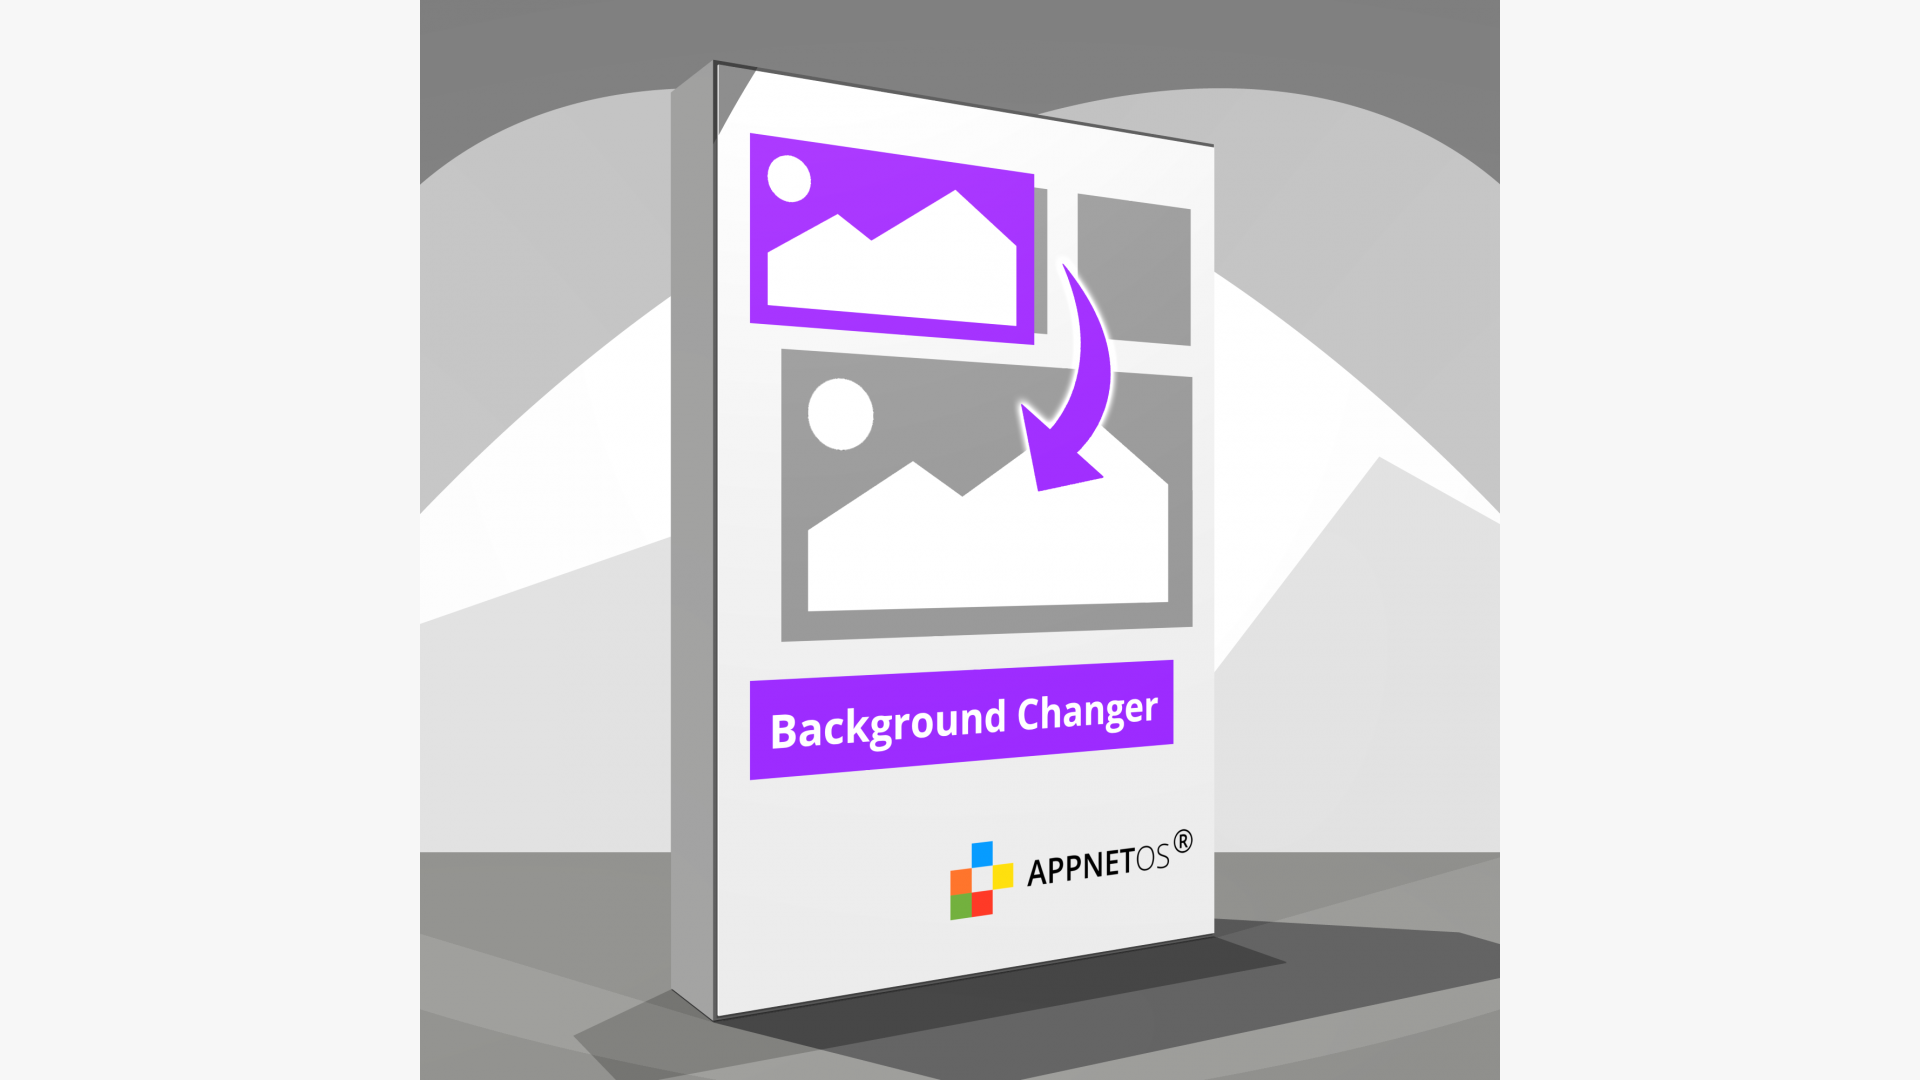 APPNET OS Background Changer